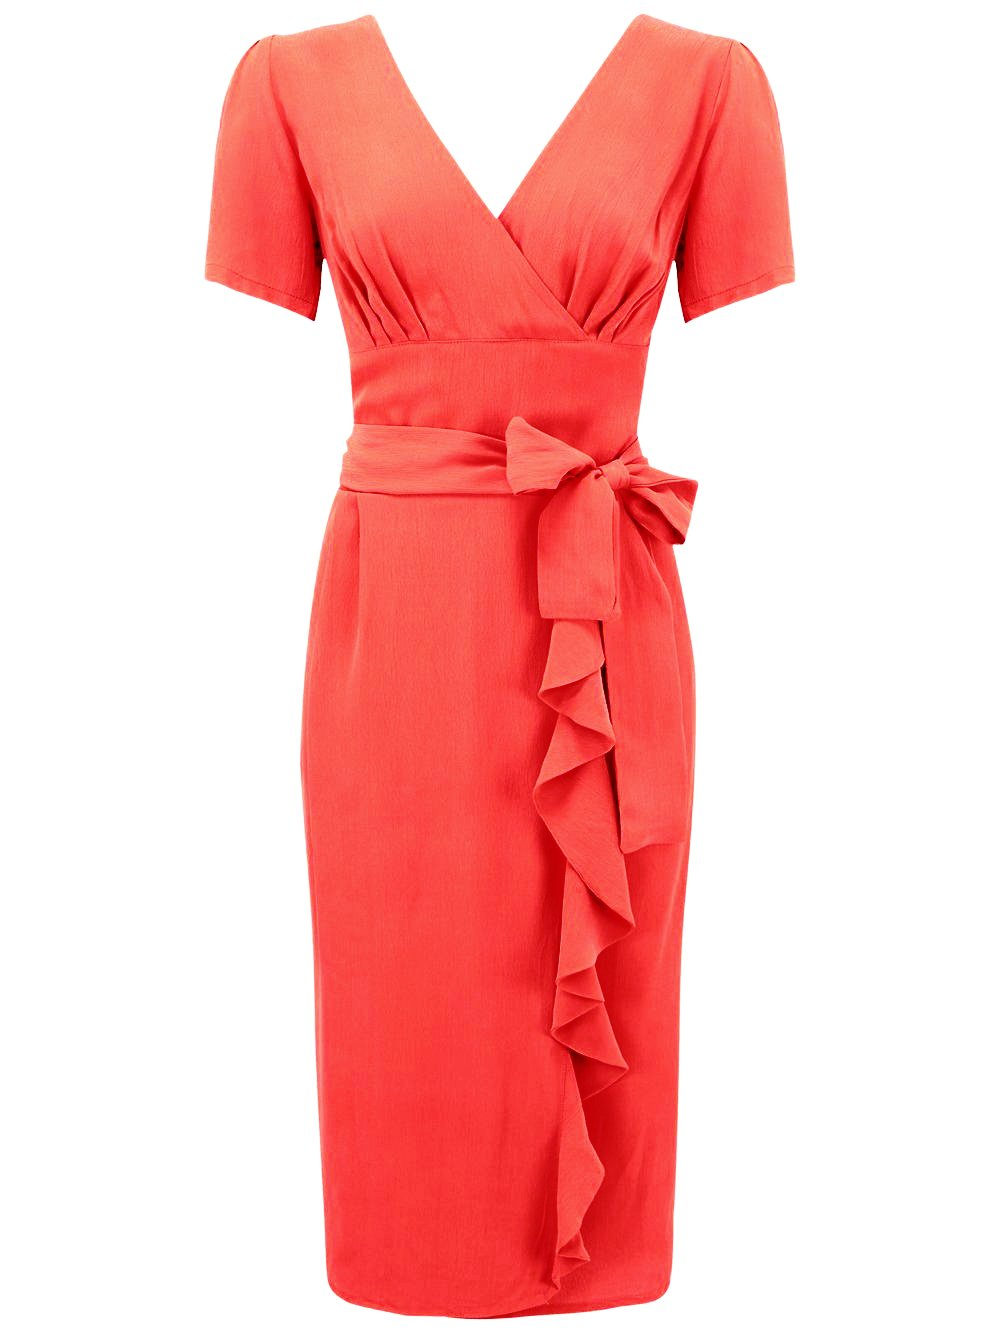 """Lilian"" Dress in Red by The Seamstress of Bloomsbury, Classic & Authentic 1940s Vintage Style"